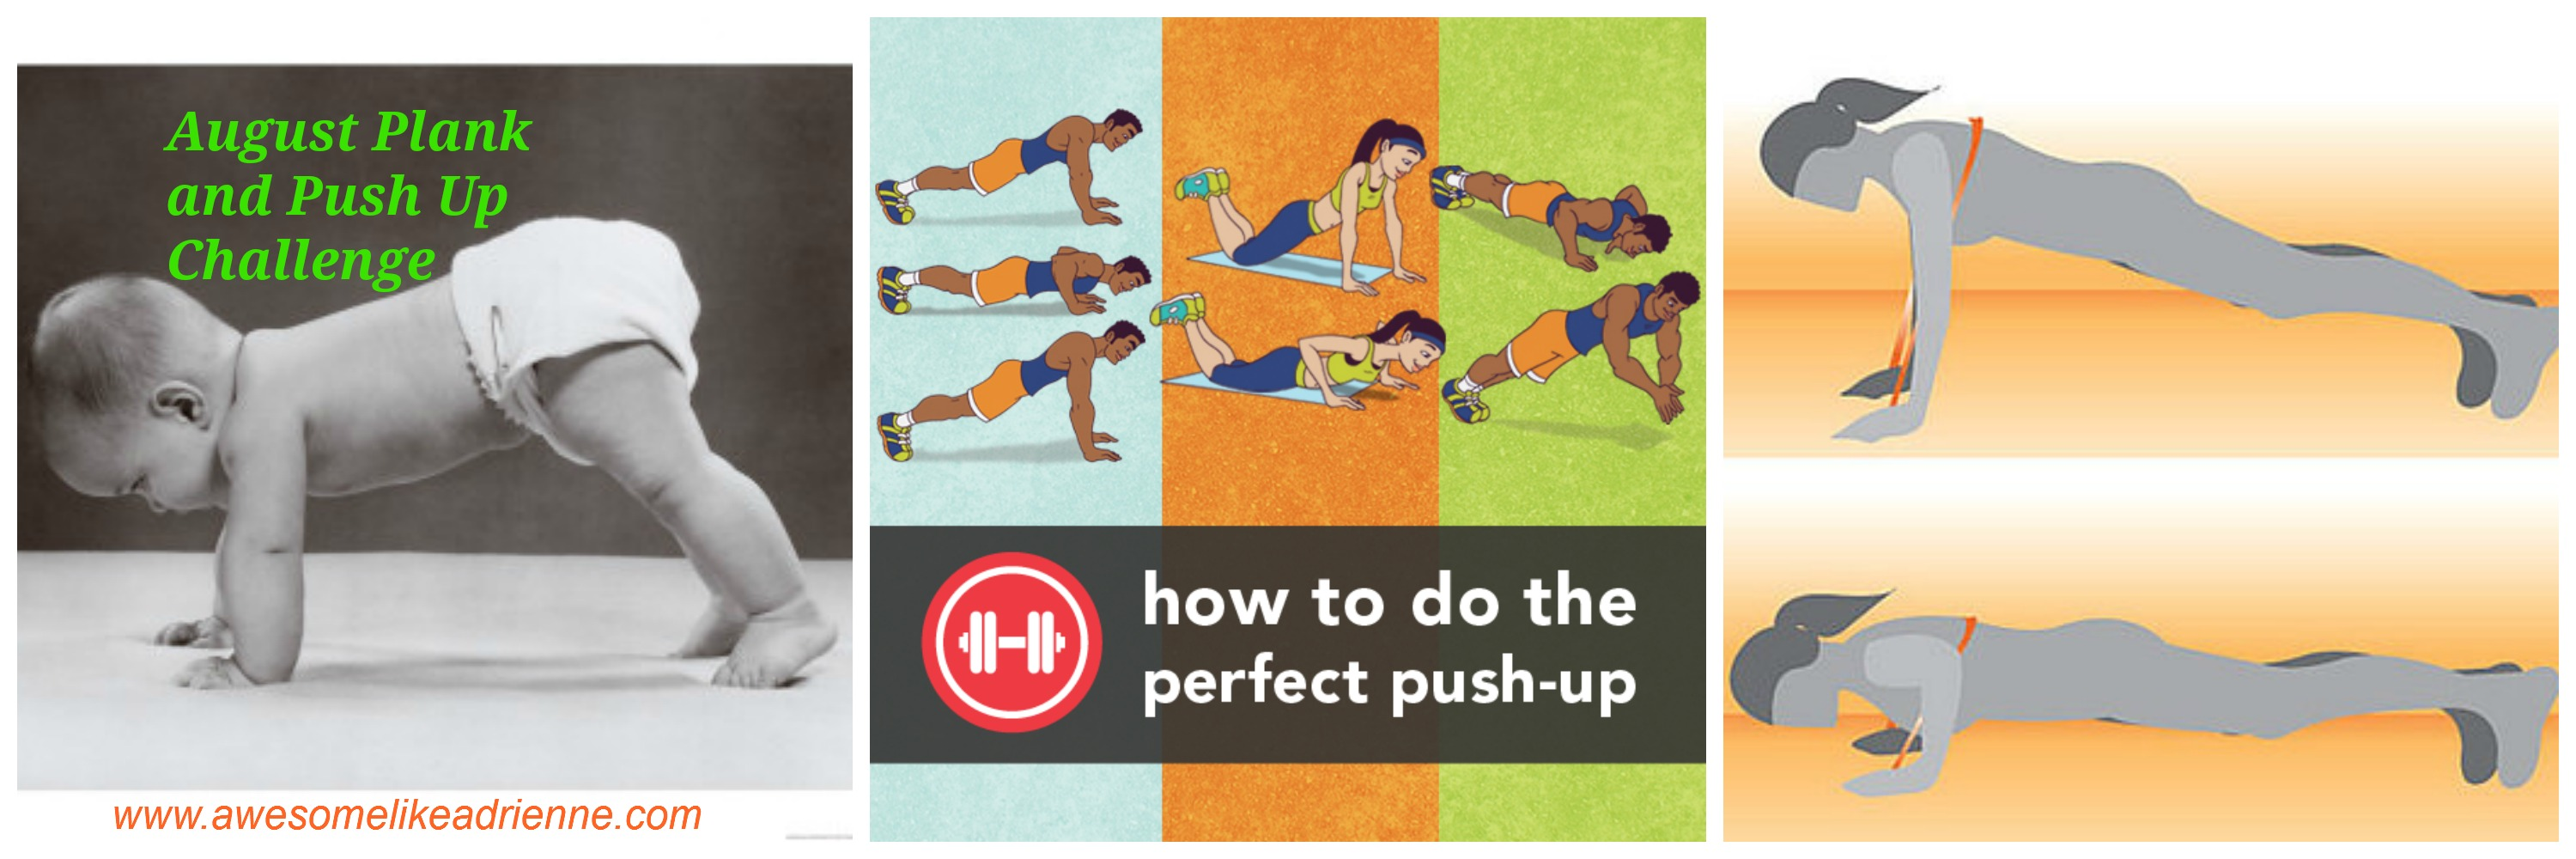 August Plank & Push up Challenge – AWESOME LIKE ADRIENNE